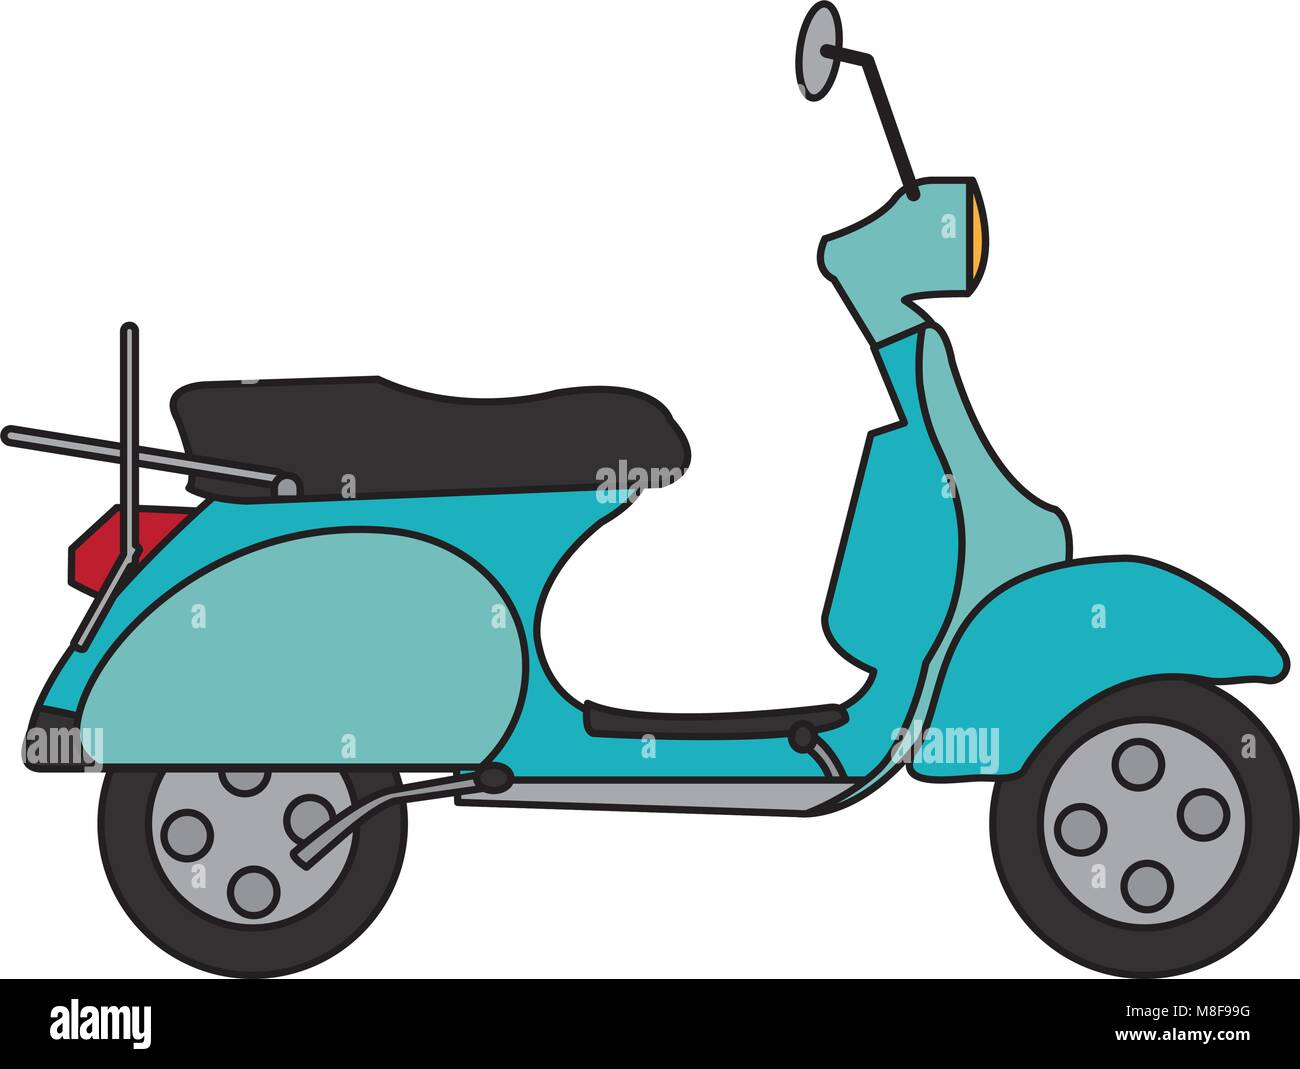 motocycle transportation travel with mirror and wheels - Stock Vector